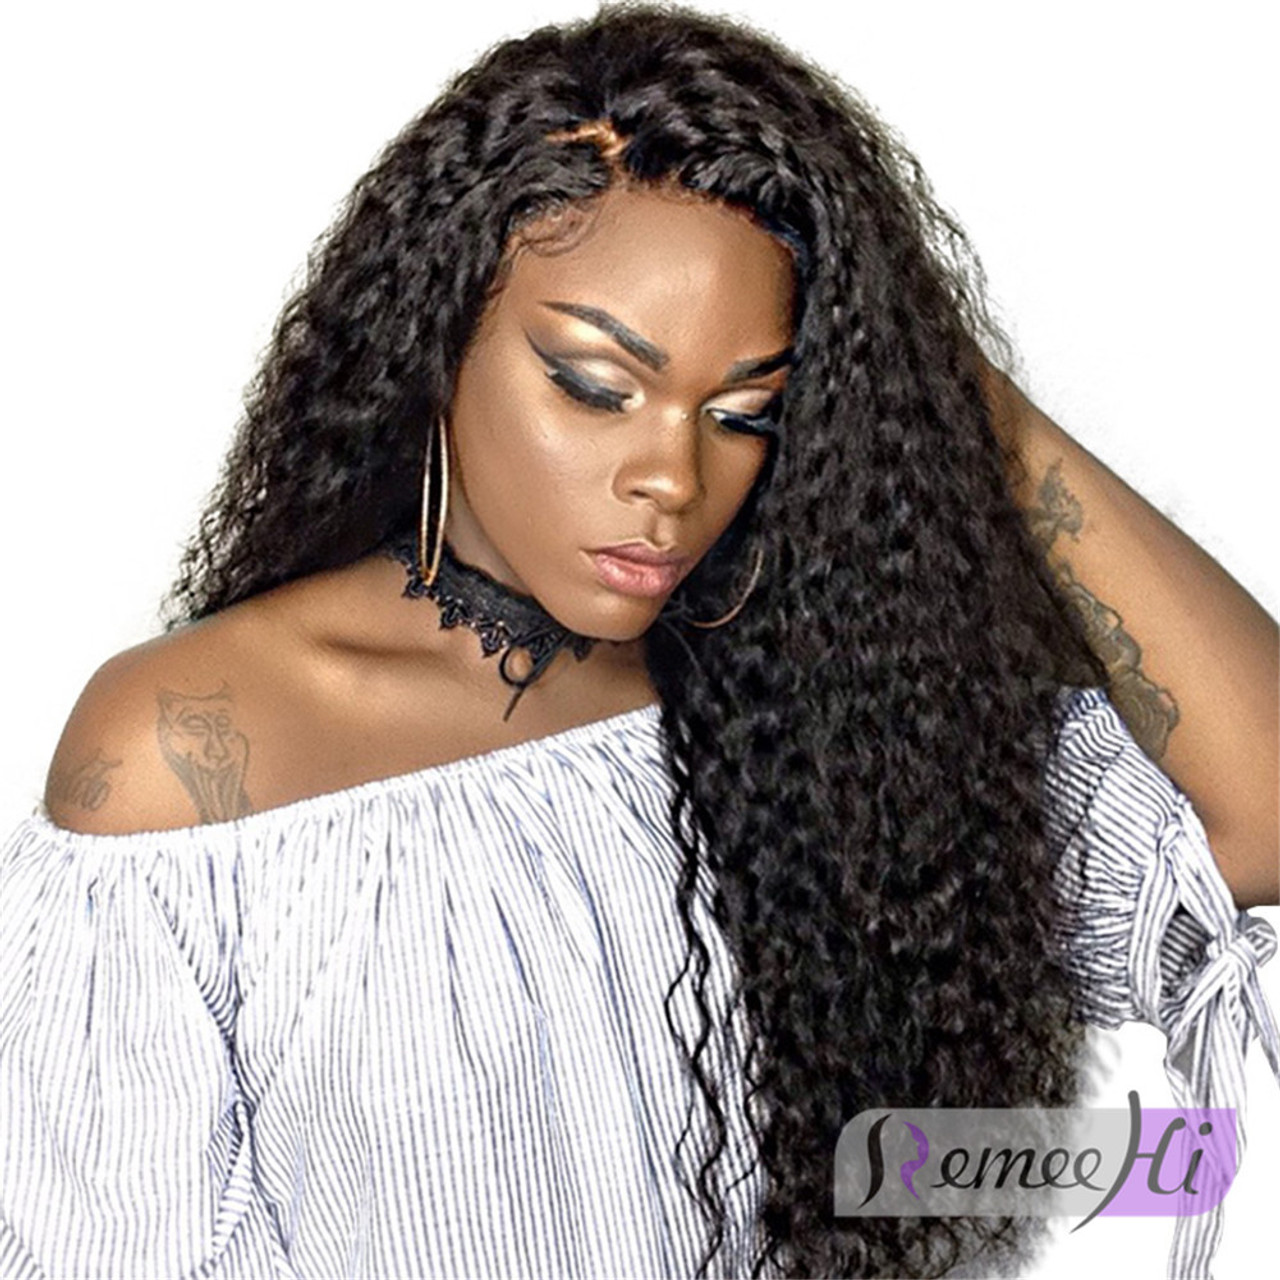 Curly Full Lace Wig With Baby Hair Indian Remy Hair - RemeeHi 3a93c7cfc684